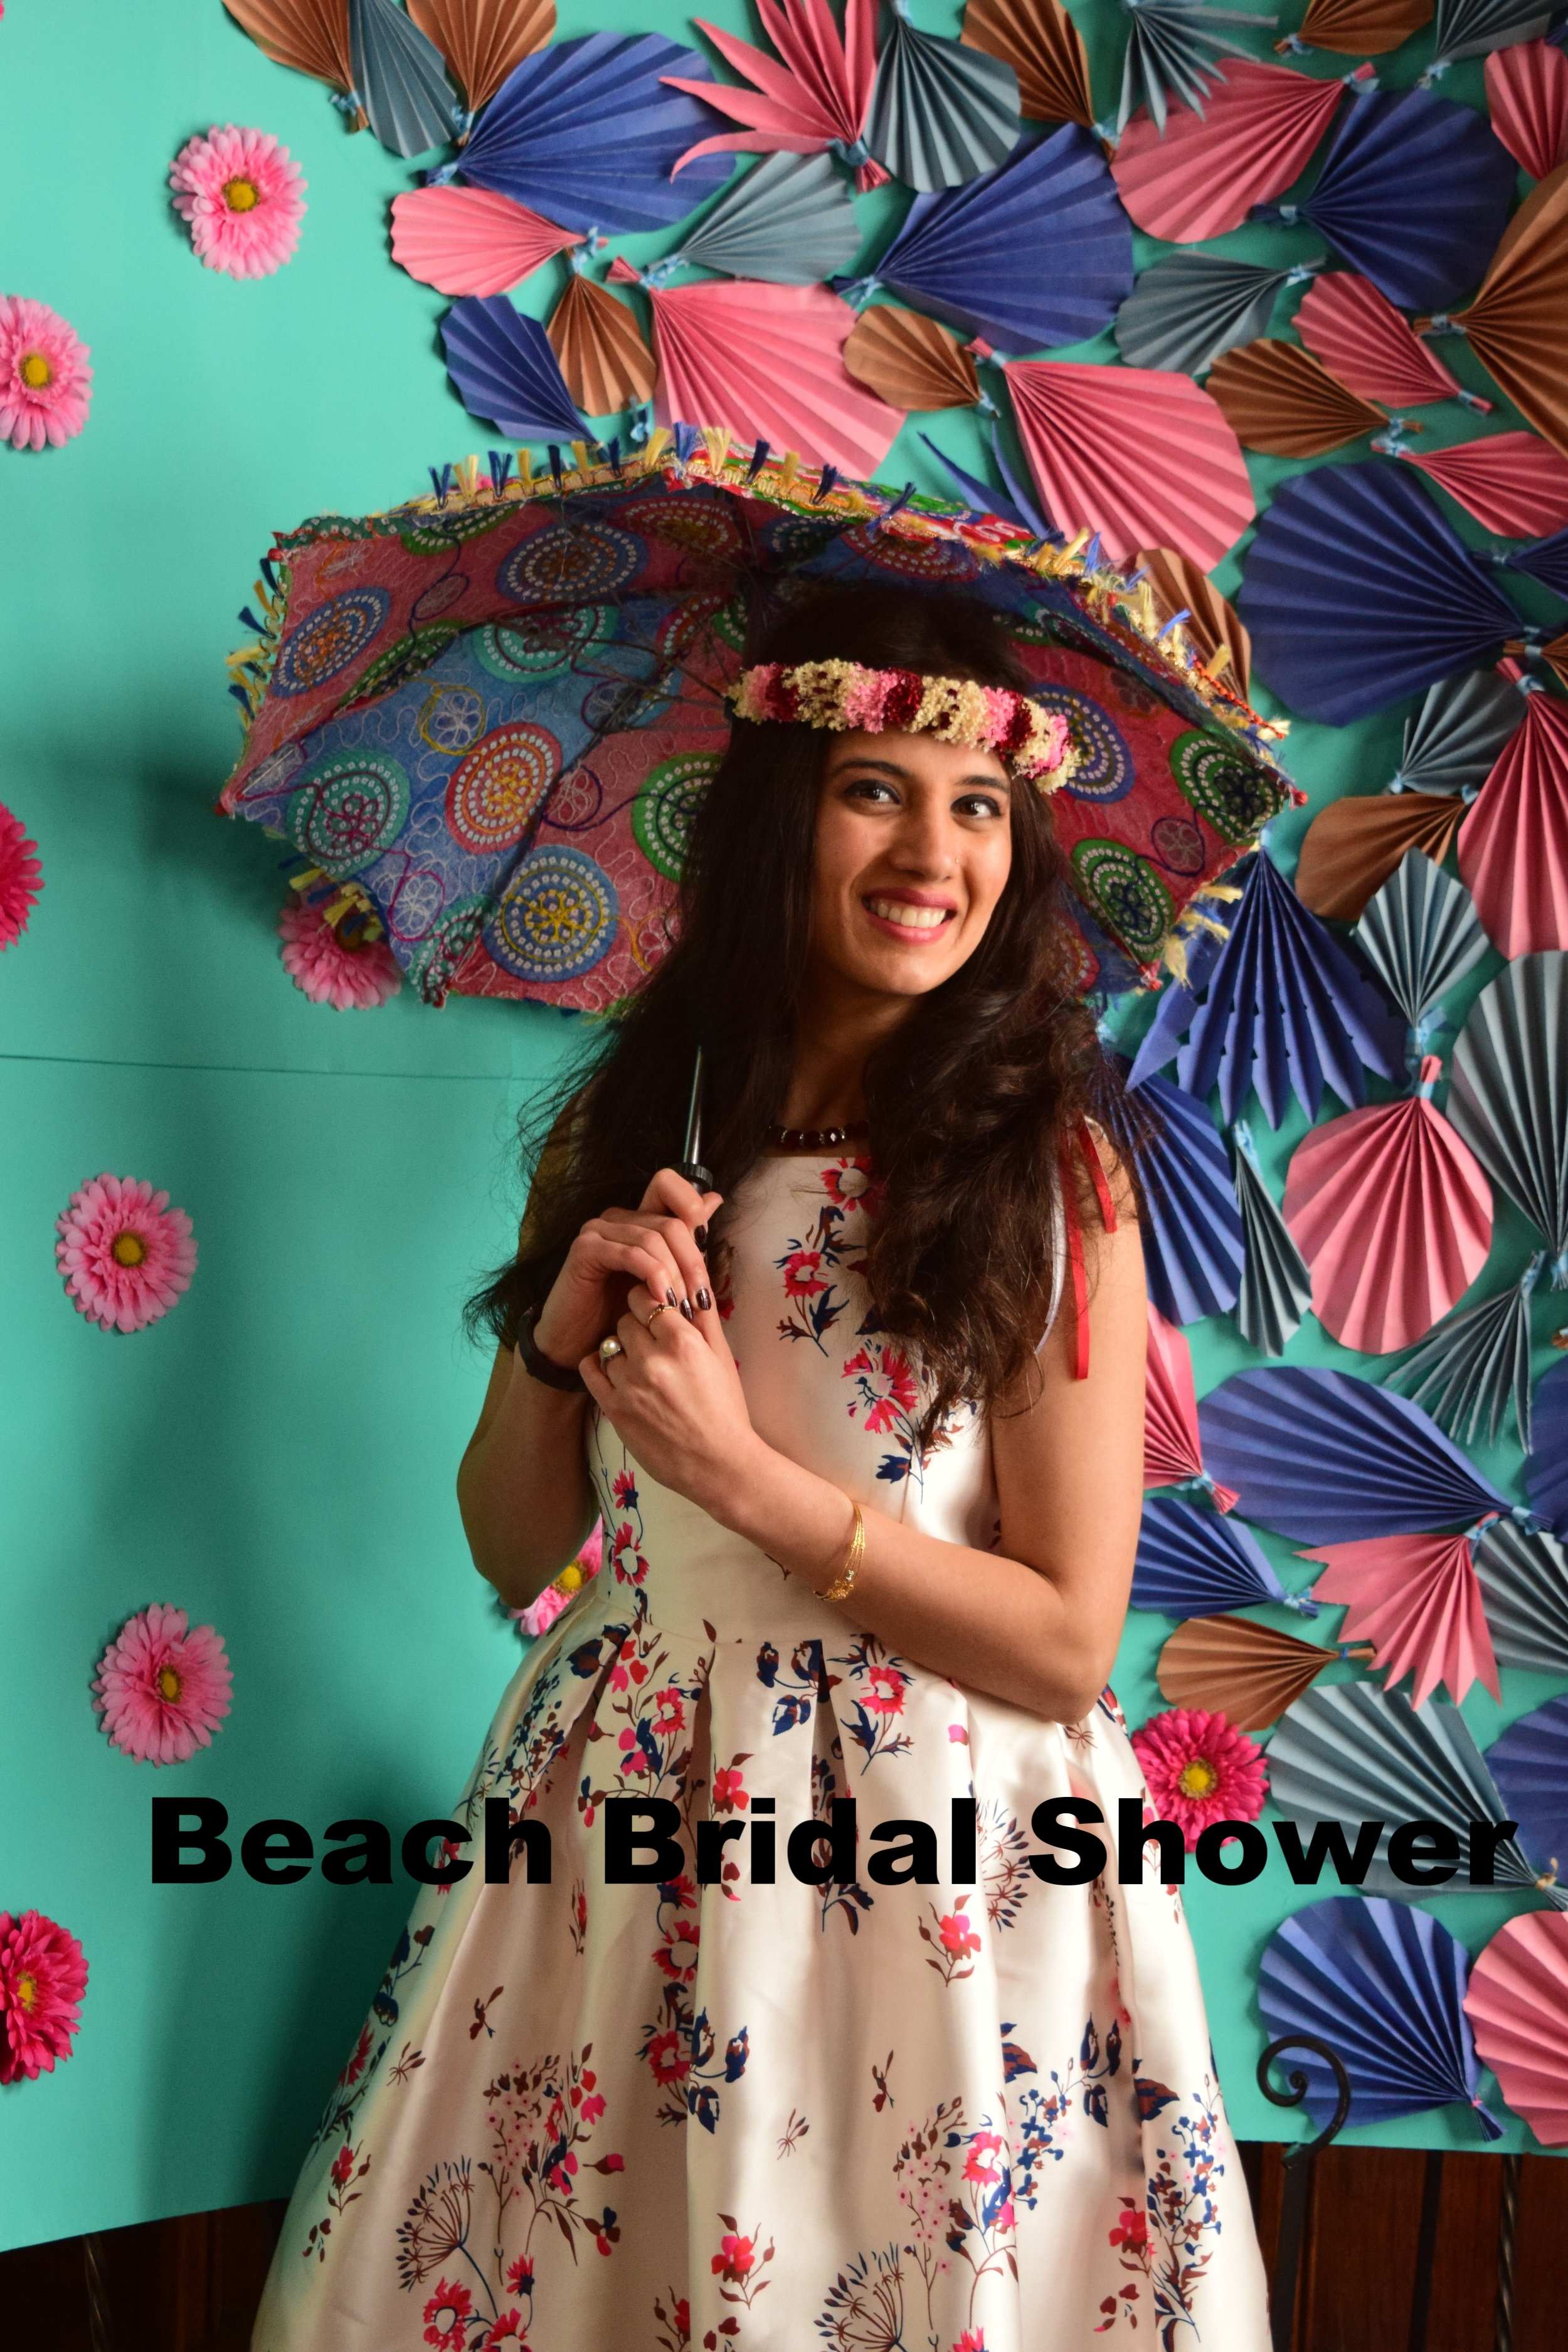 A Hawaiian Beach Themed Bridal Shower